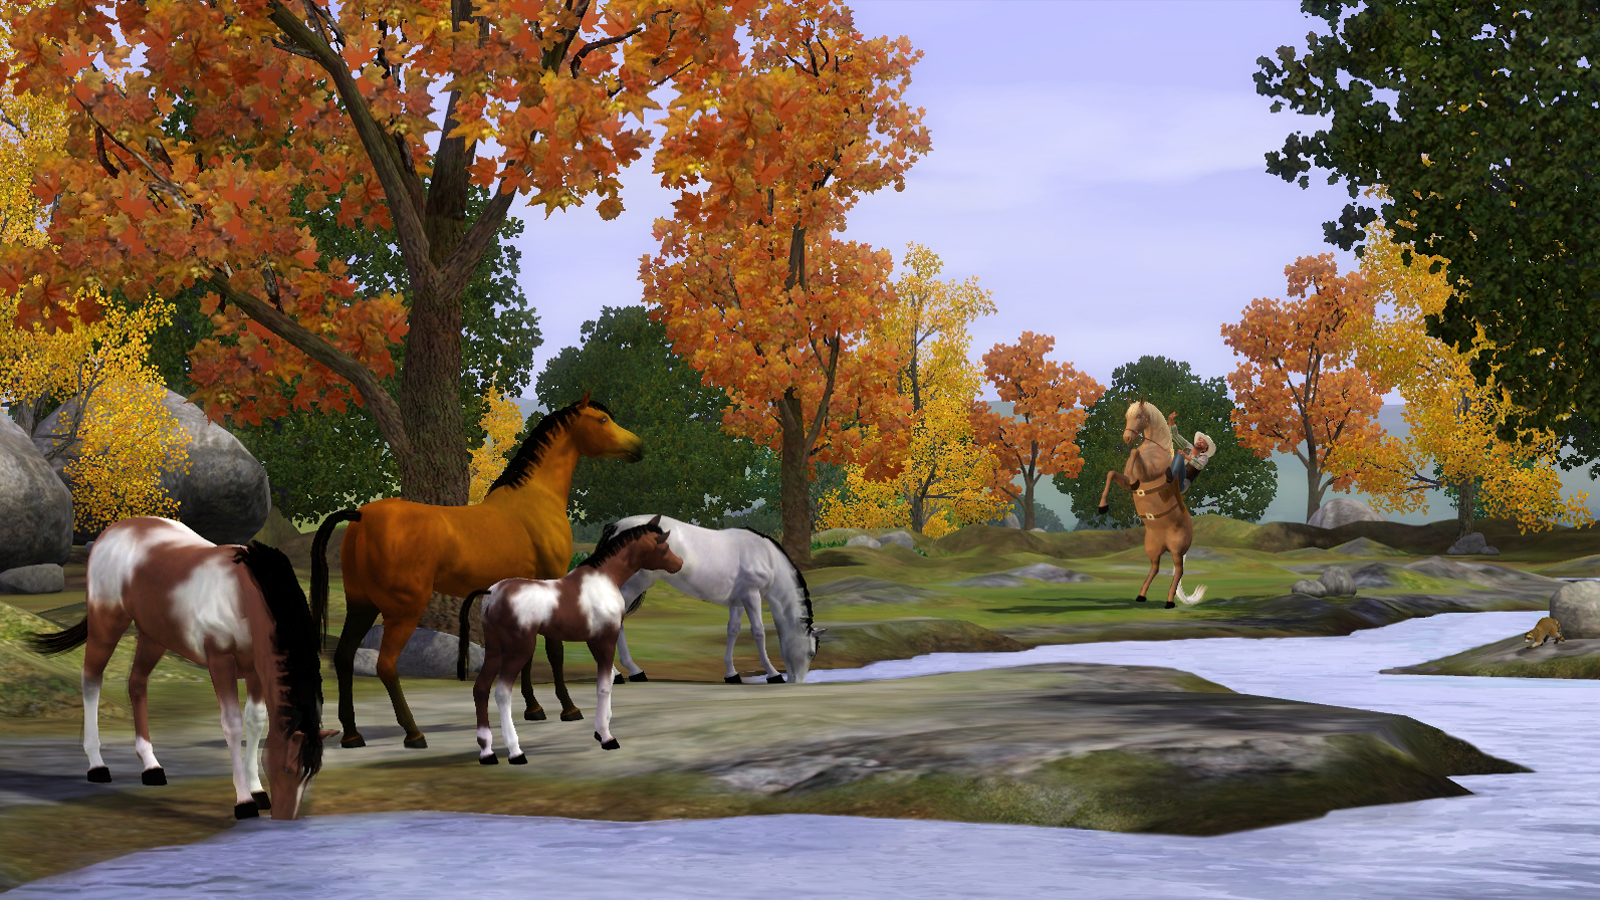 The sims 3 pets rutor - 6637